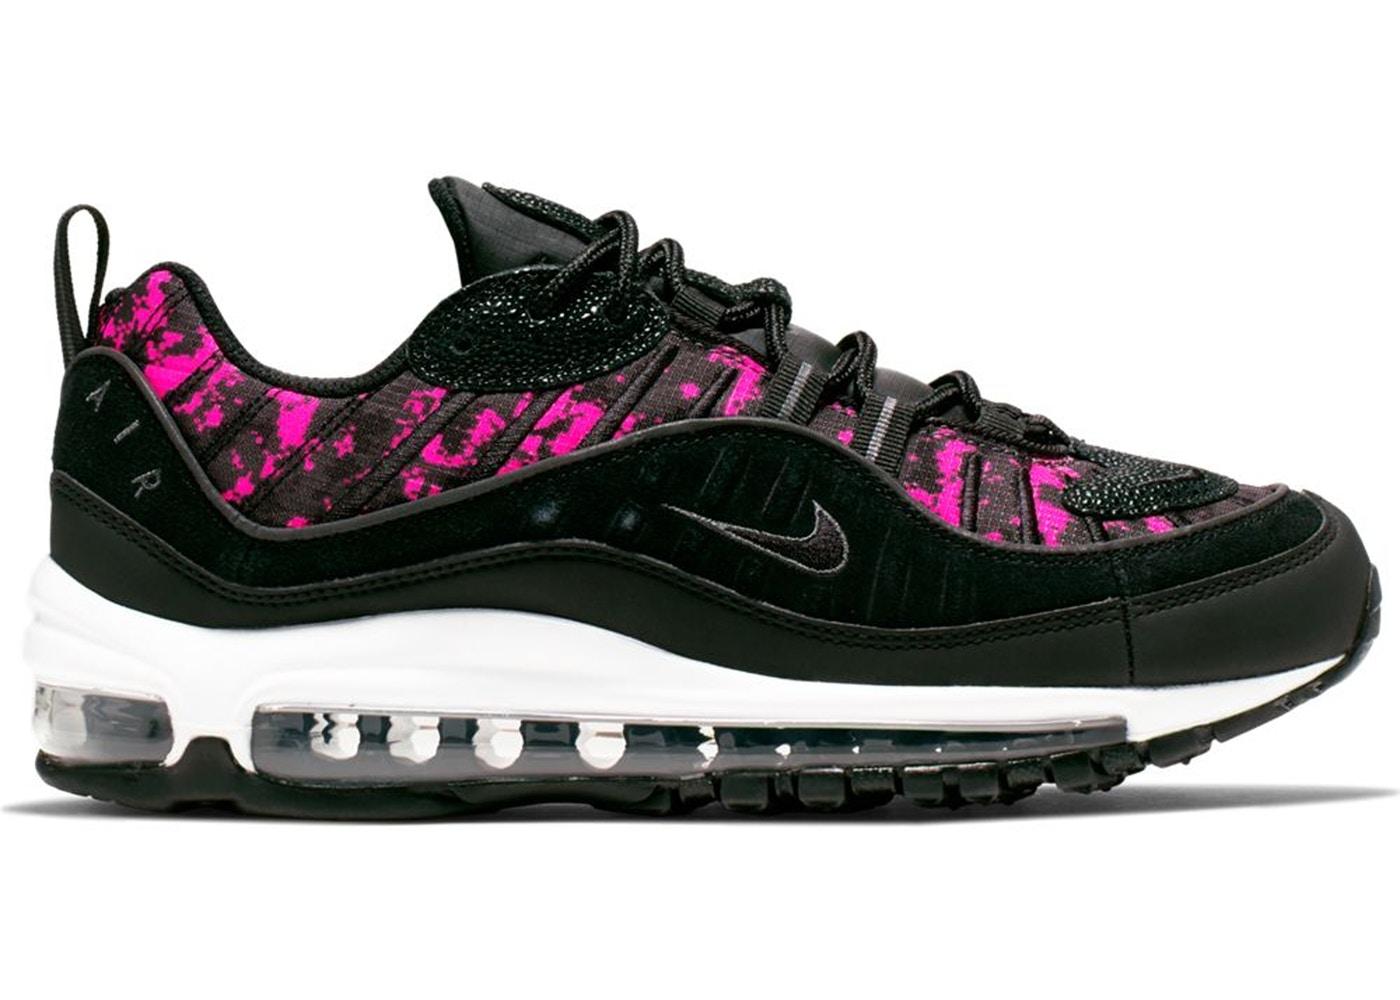 0b9a714cd2 Air Max 98 Pixel Black Hyper Pink (W) - CI2672-001